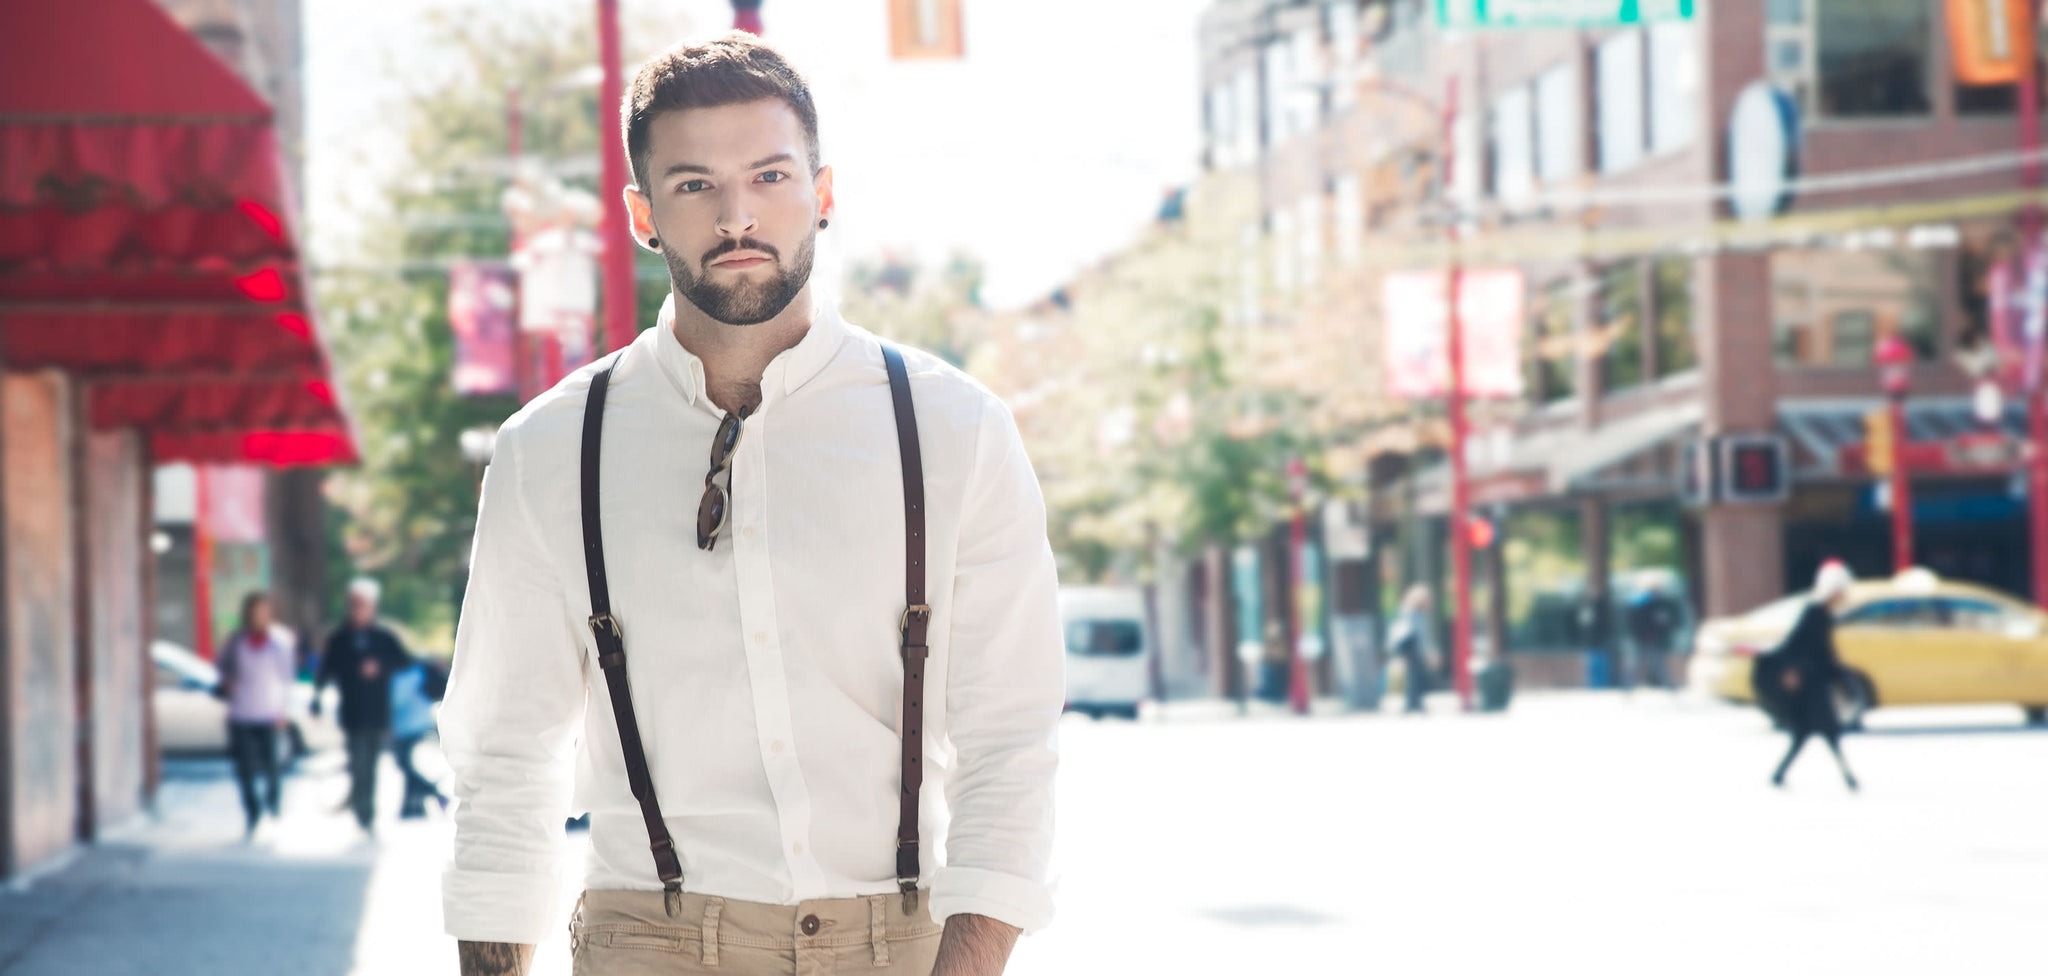 How to Wear Suspenders - Style Guide - JJ Suspenders 11d34e9ed